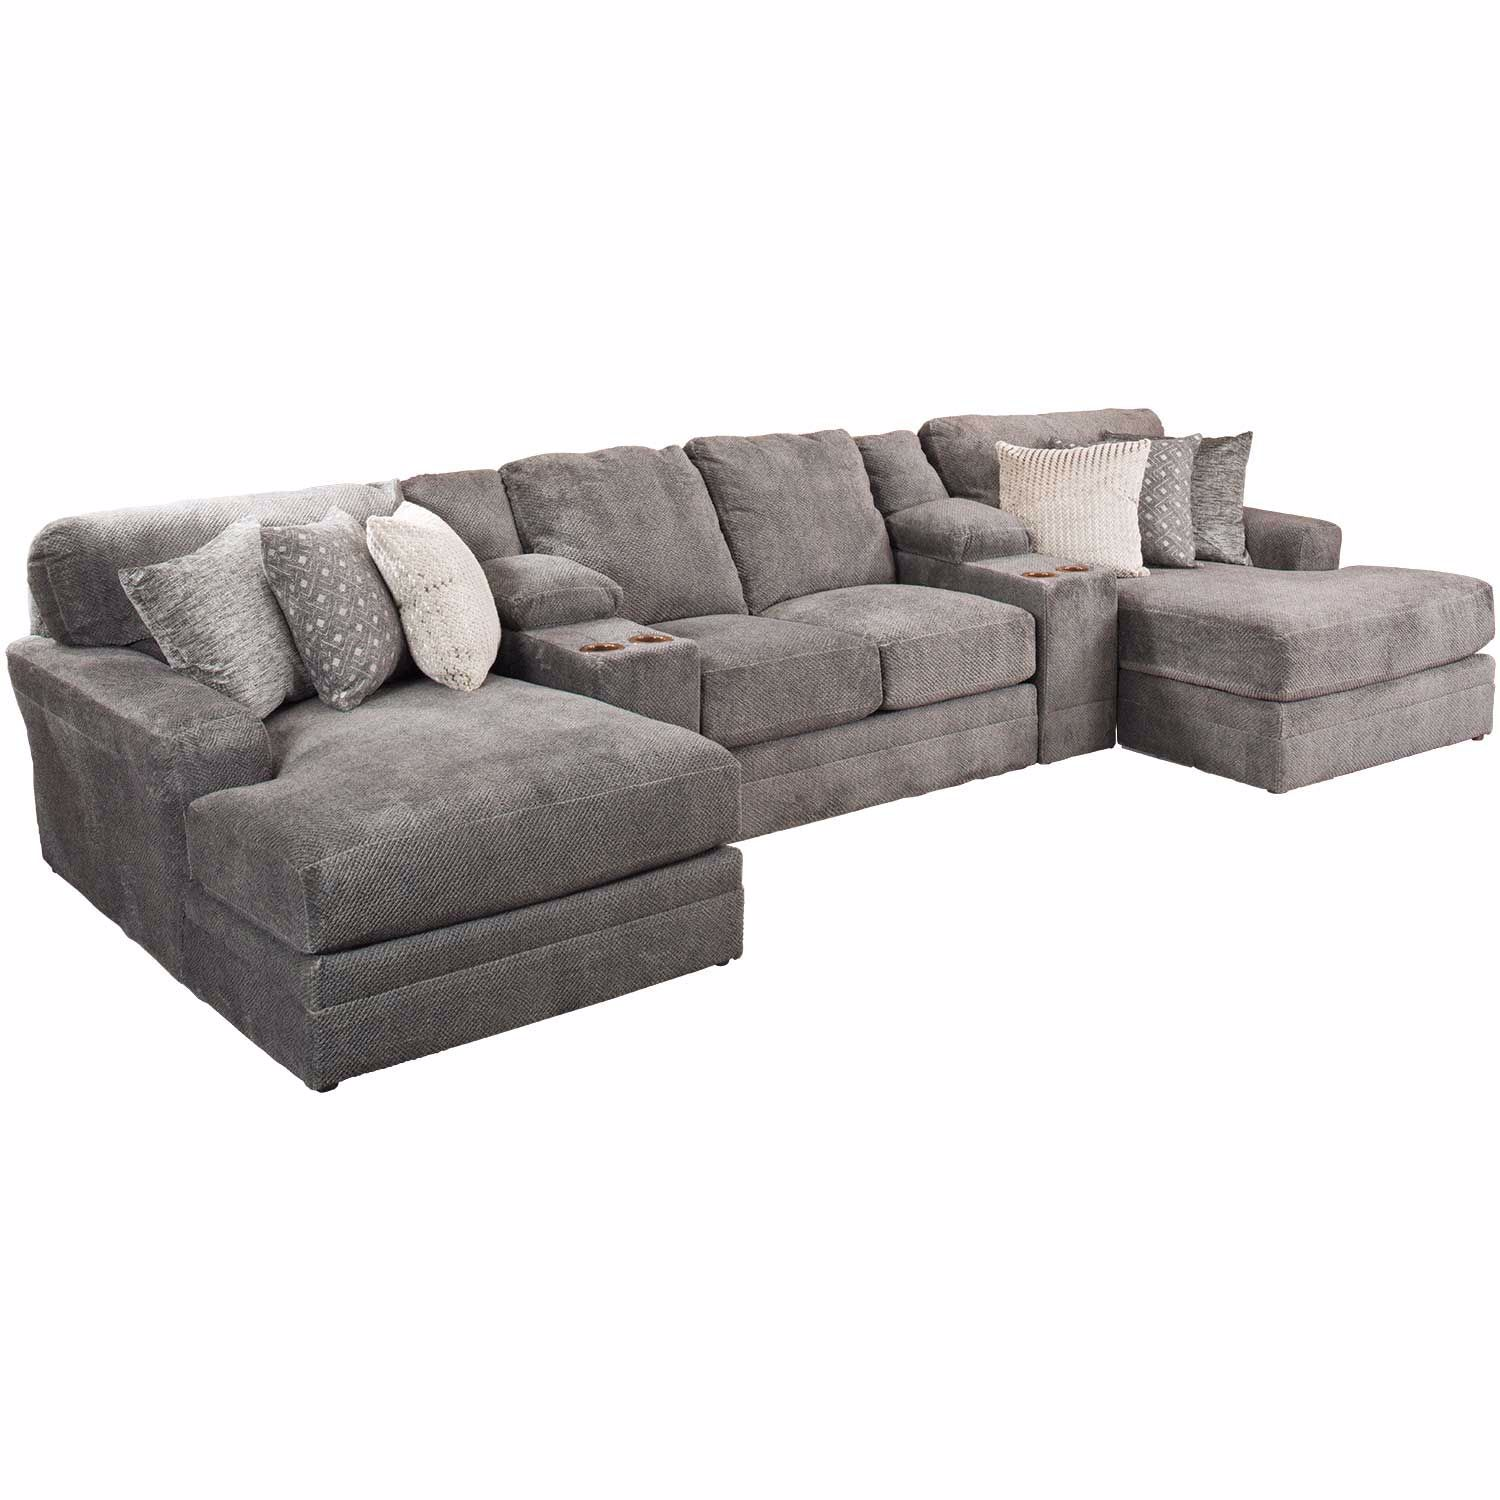 Mammoth 5 Piece Sectional with LAF and RAF Chaise